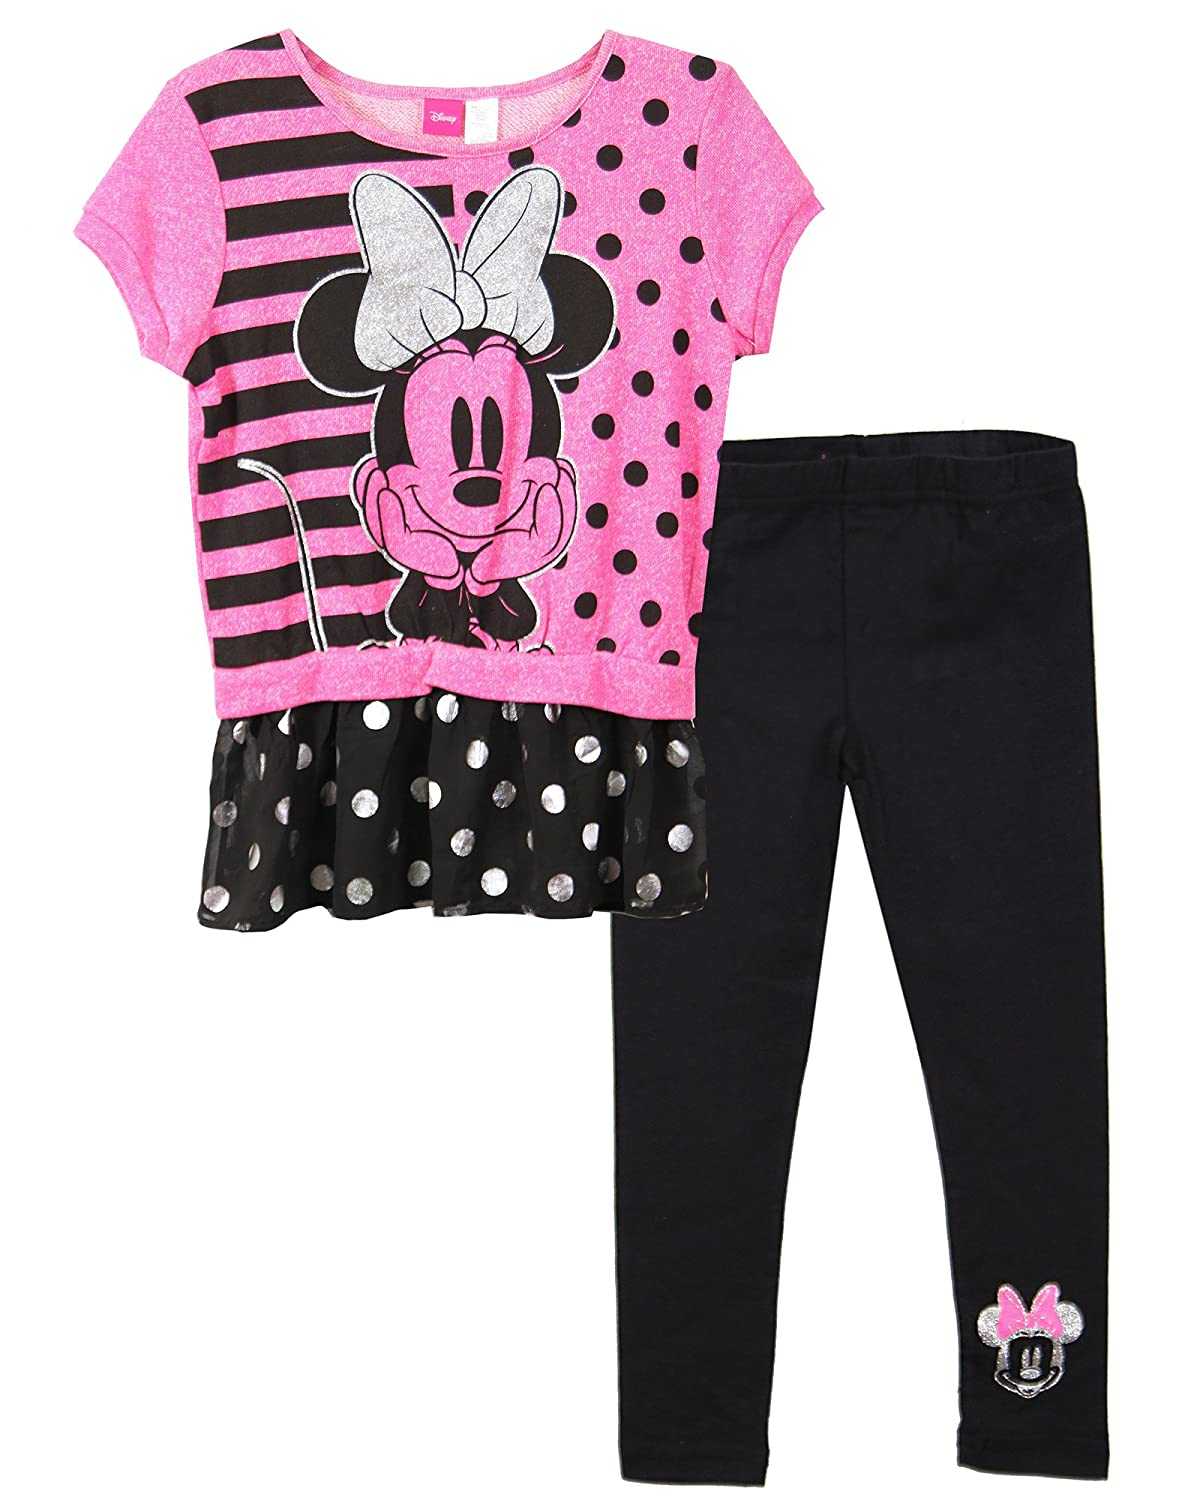 b9ee17dbc Cute polka dot at the bottom of the t-shirt and leggings. Authentic Disney  licensed product. Comfortable, cute and good for all season, high quality  print